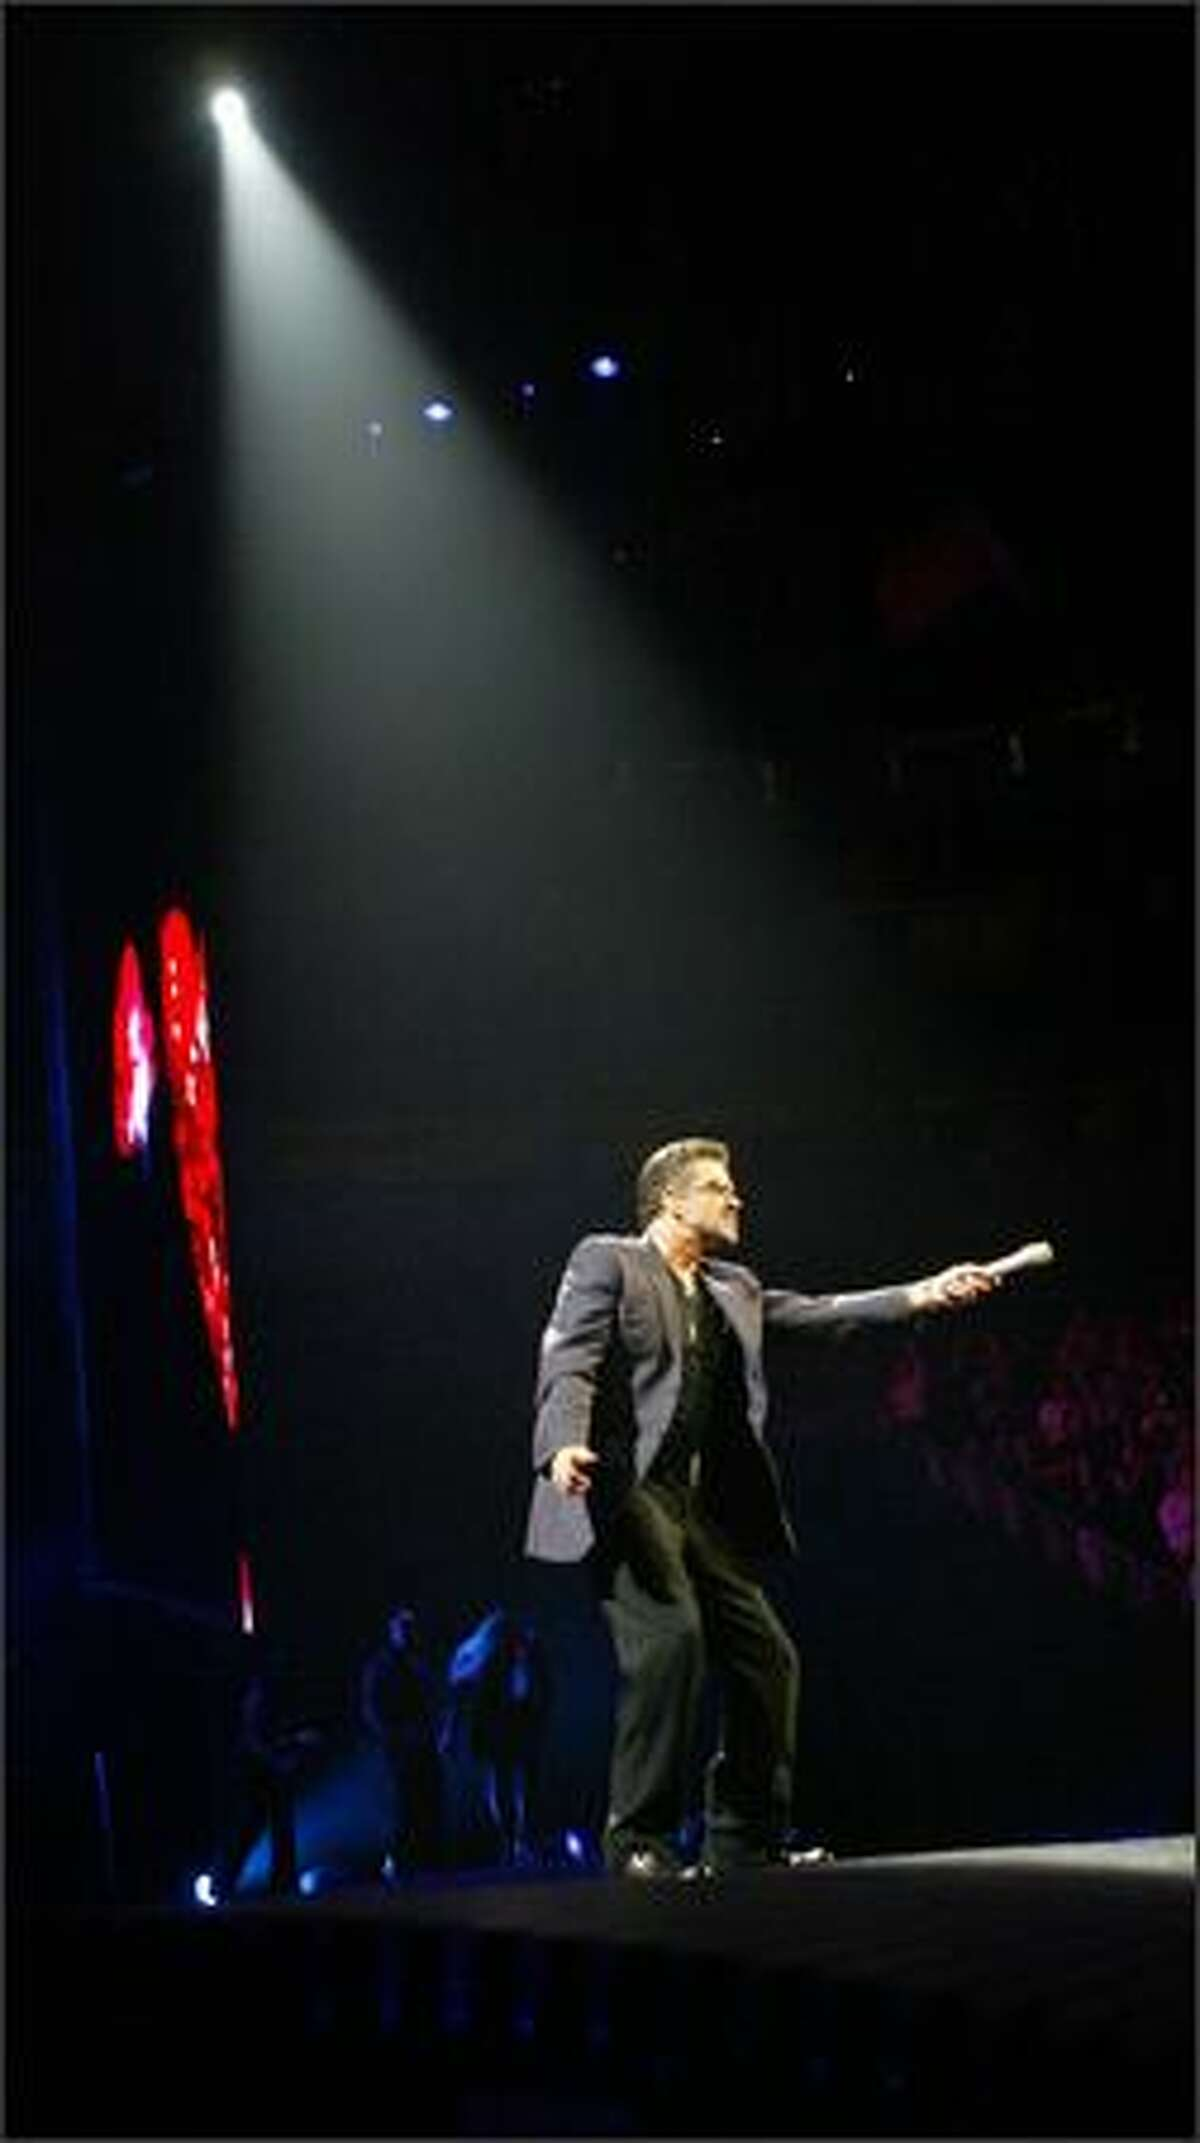 George Michael sings Fast Love in concert at Seattle's Key Arena.